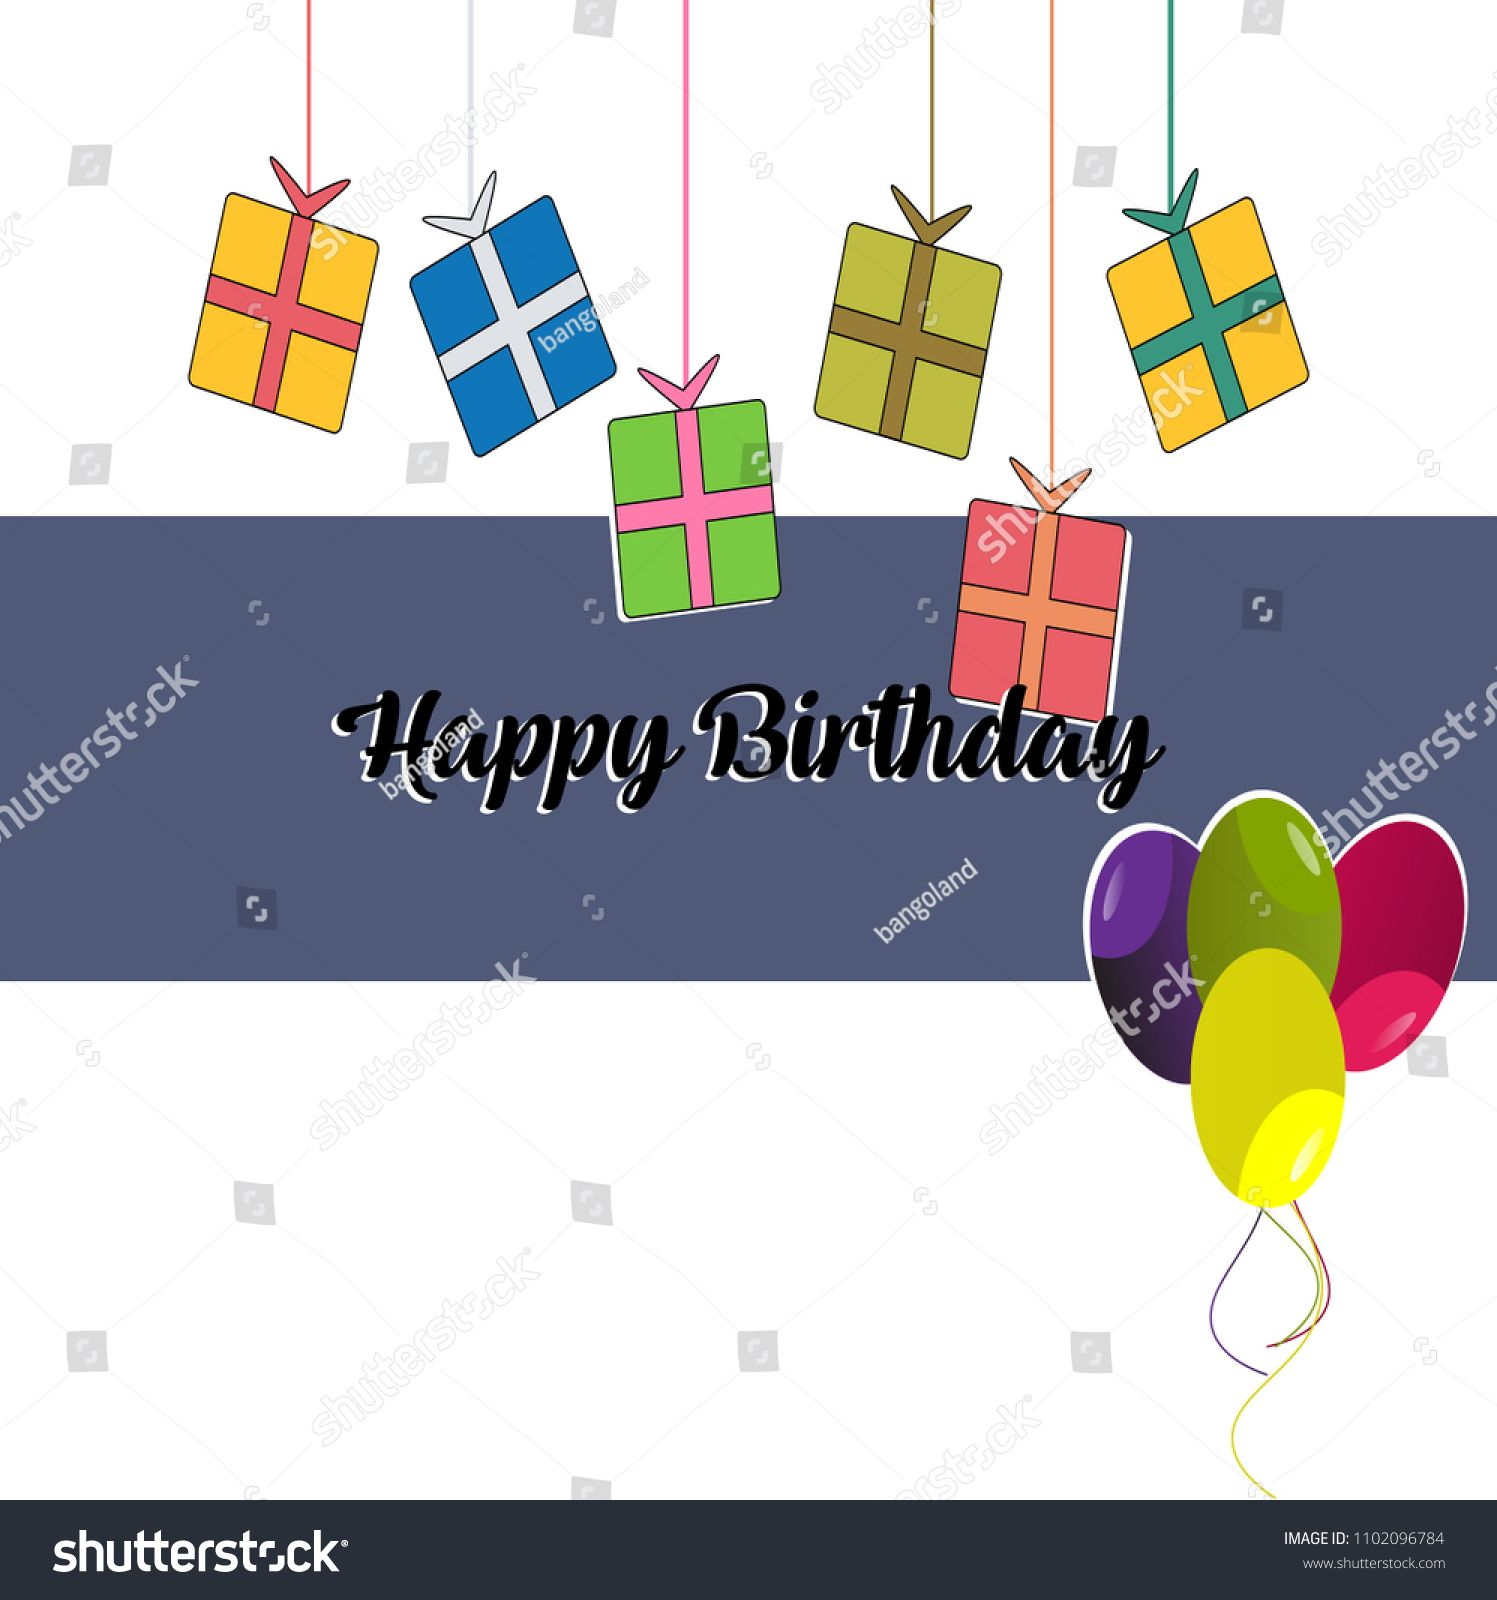 Happy Birthday Vector Illustration Design For Greeting Cards